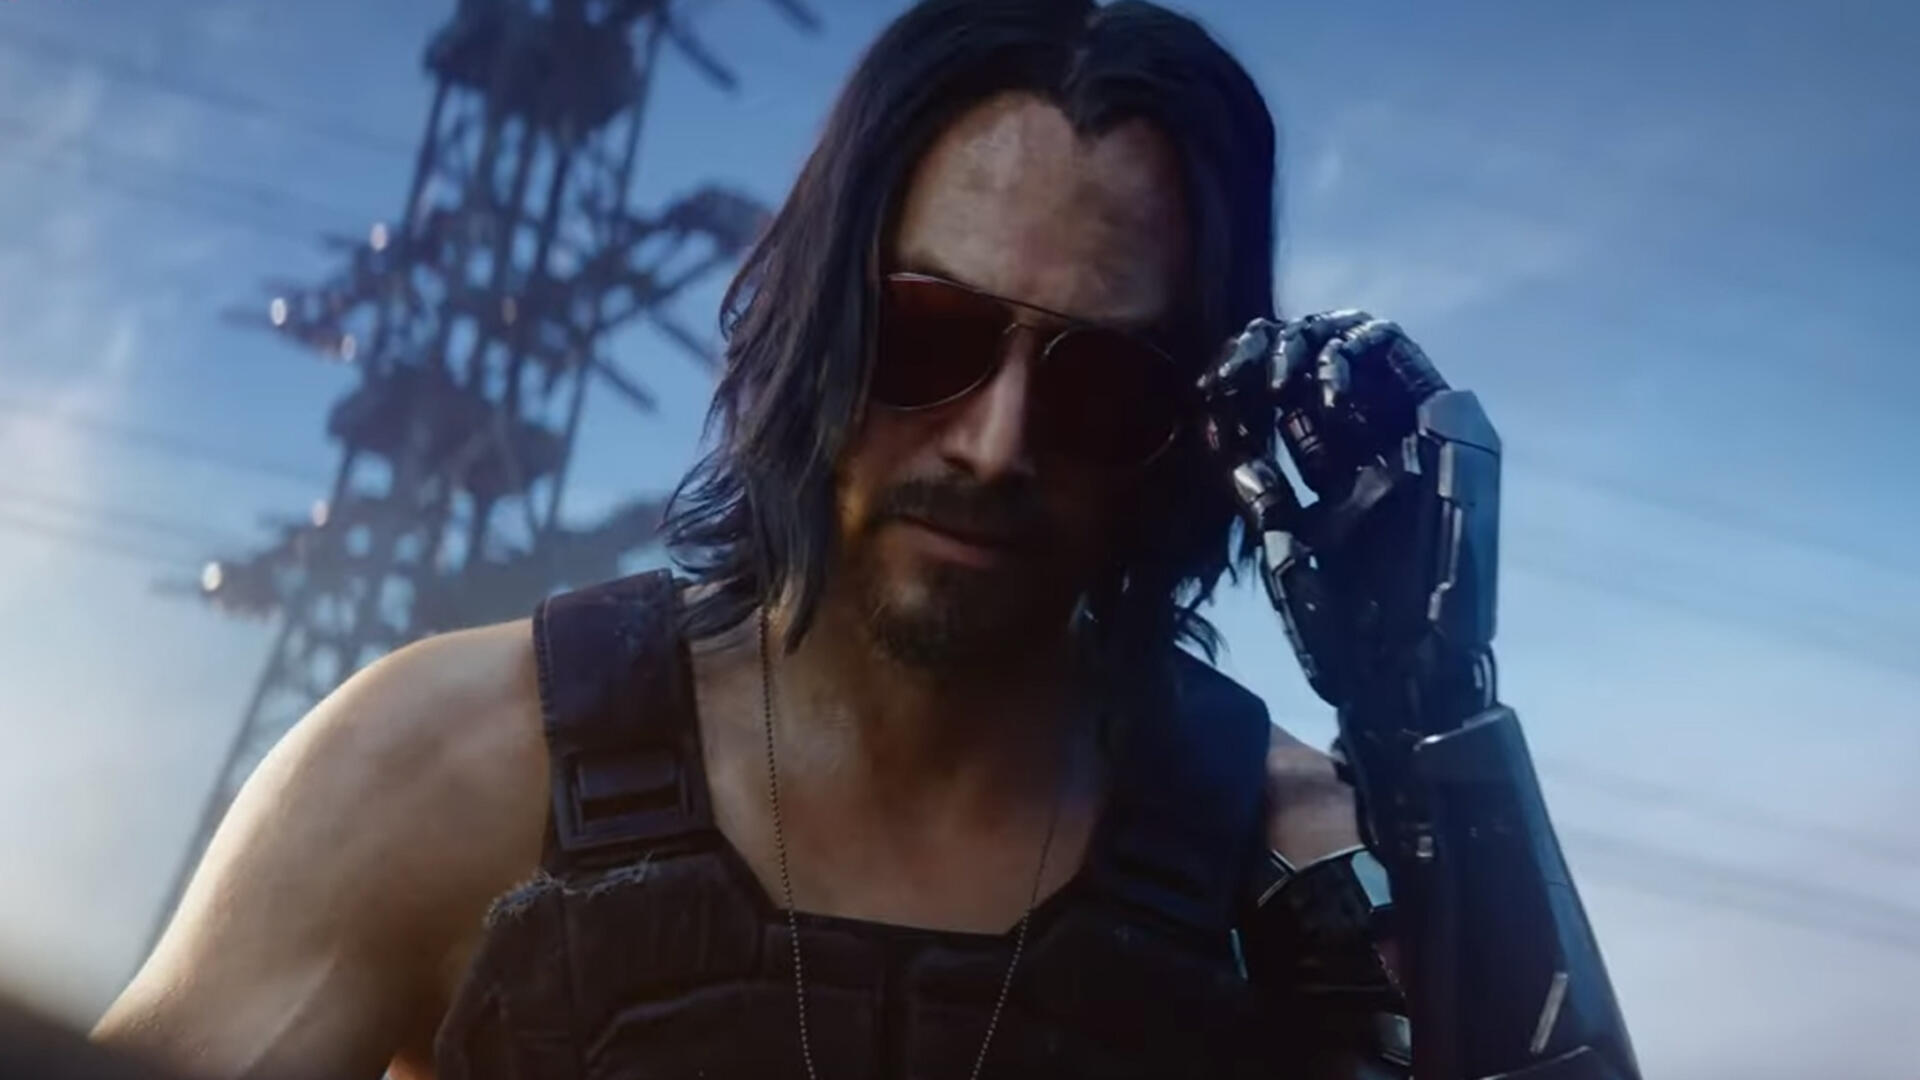 Xbox E3 2019 Press Conference Recap: The Next-Generation Xbox is Revealed (Sort Of), But Keanu Reeves Steals the Show